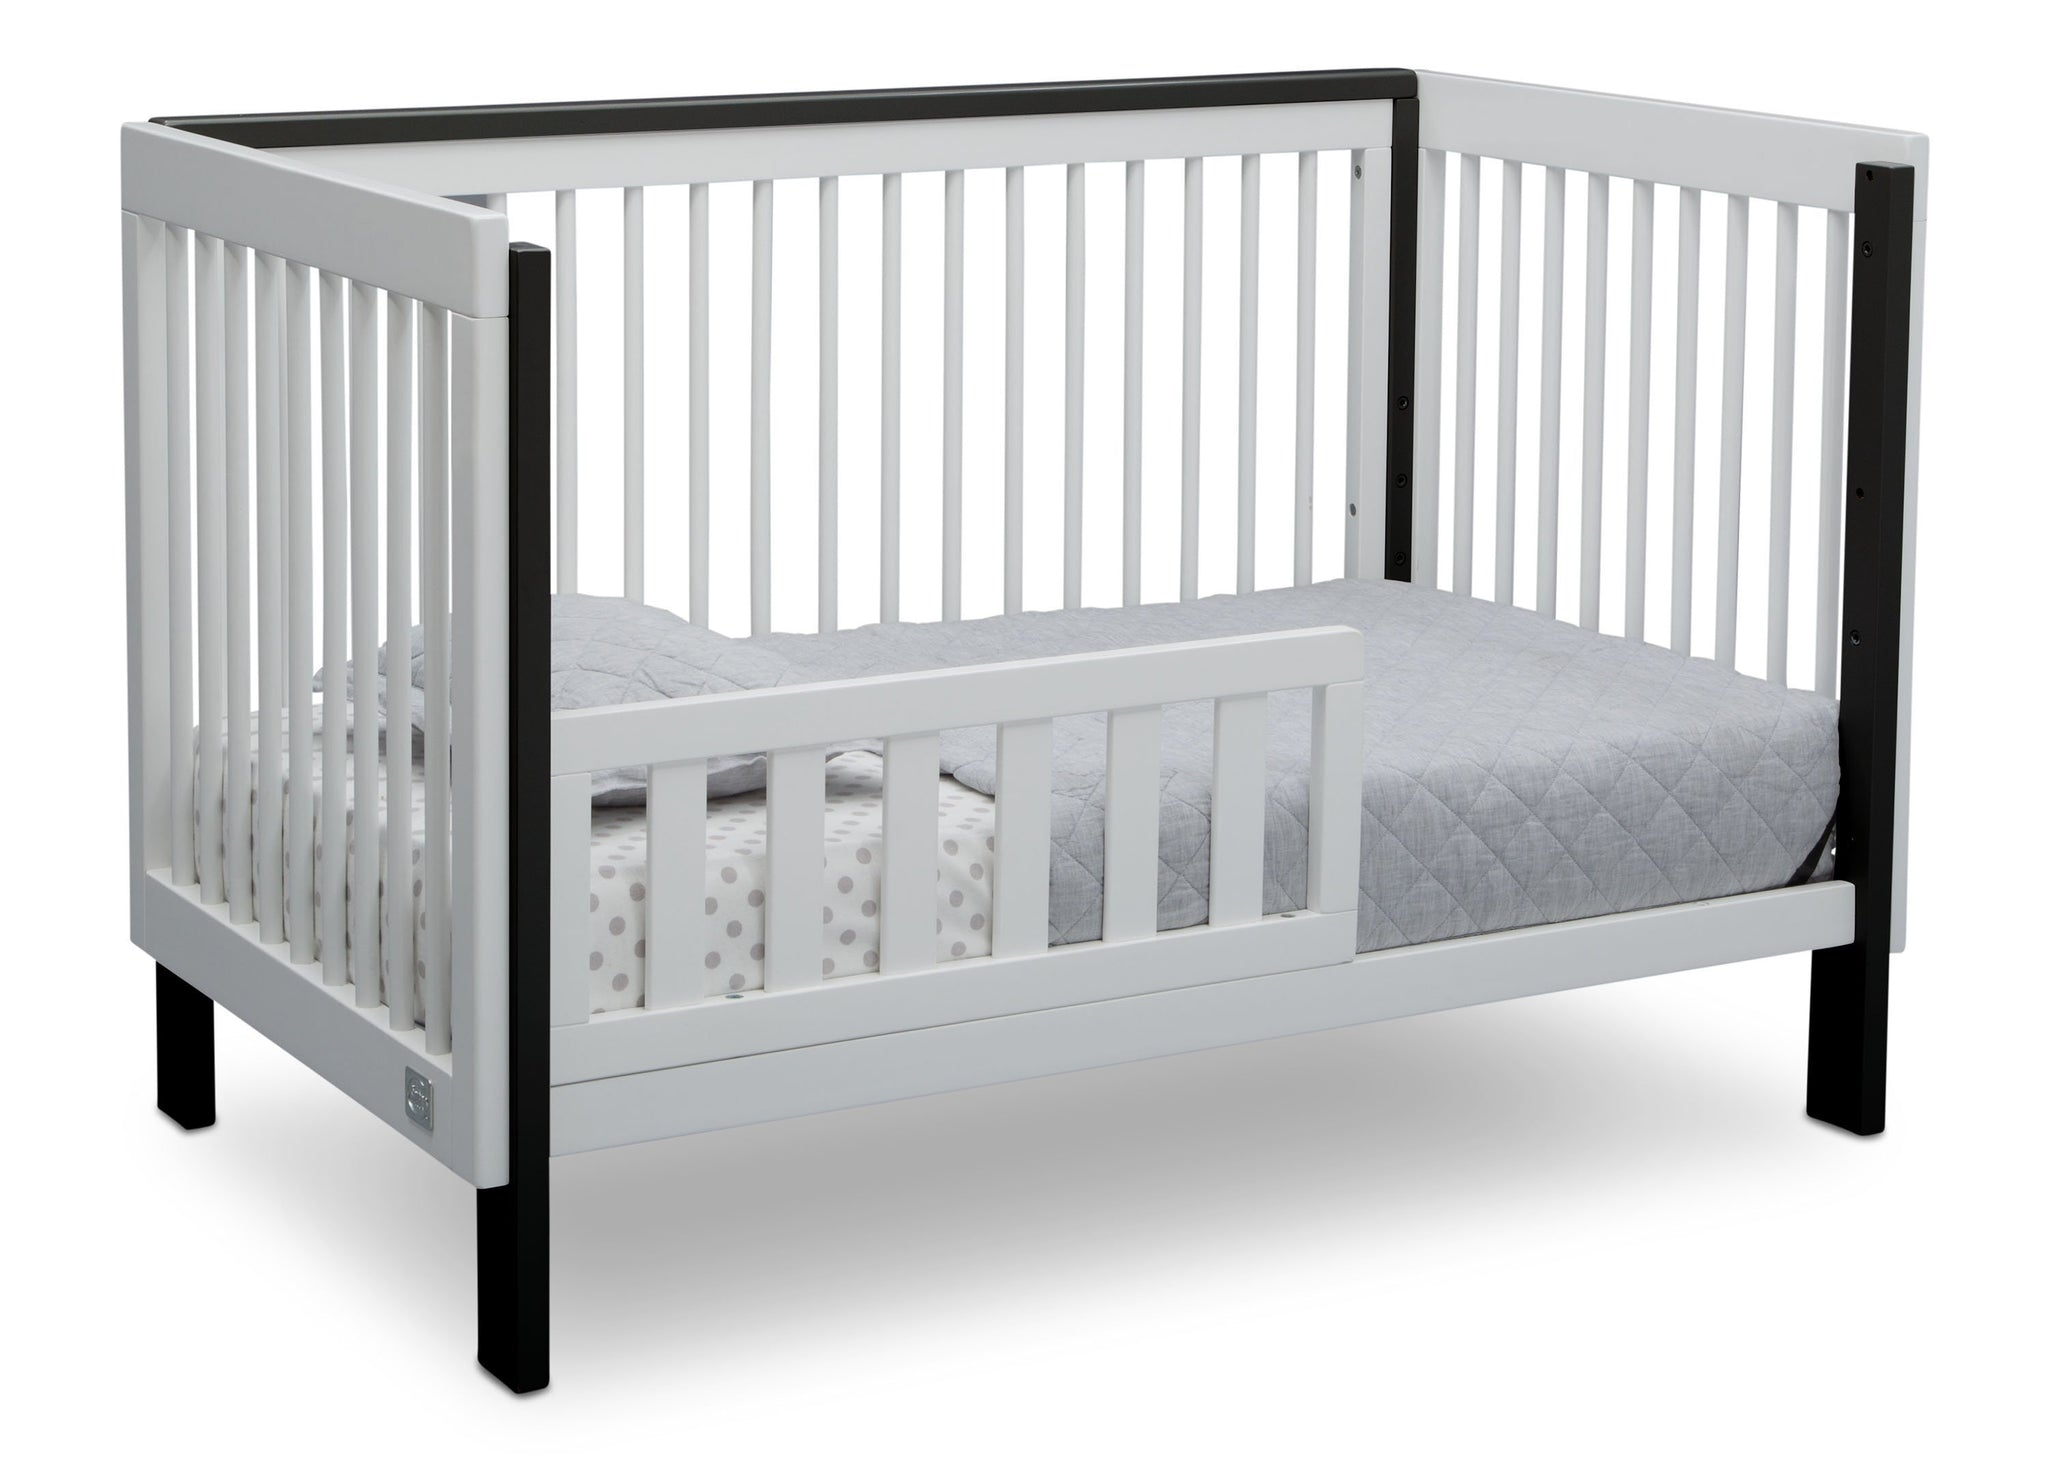 Serta Fremont 3-in-1 Convertible Crib Bianca White with Ebony (149) Toddler Bed b4b